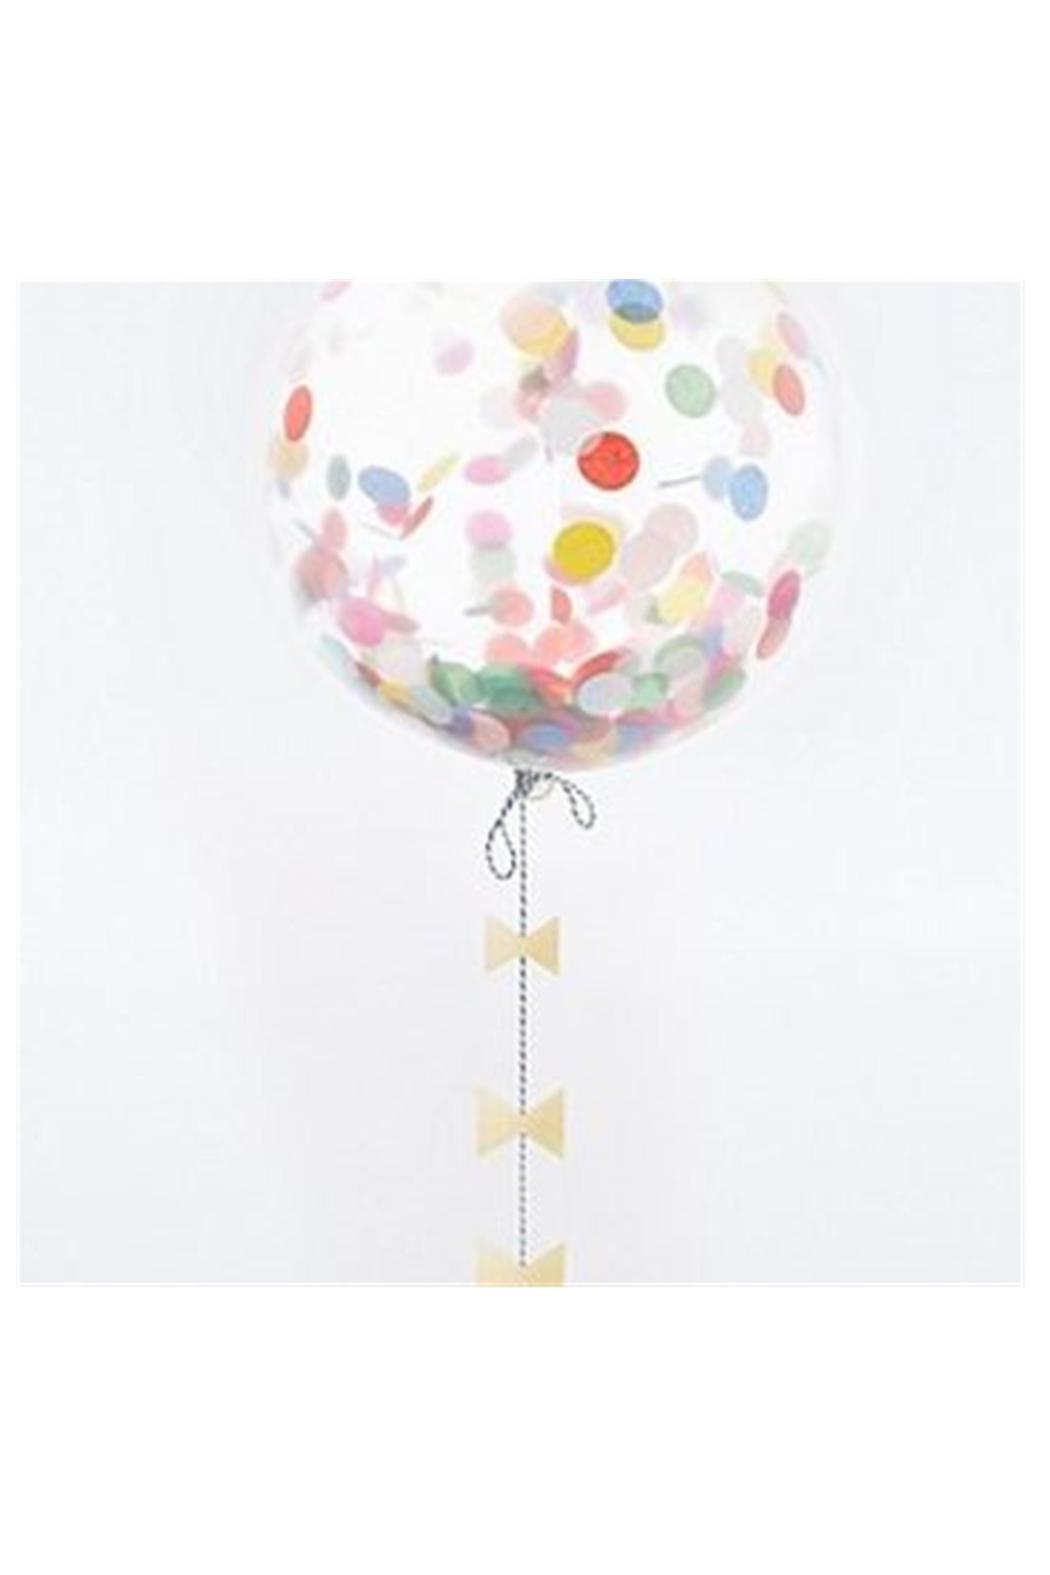 Meri Meri Confetti Balloon Kit From Alabama By The Paper